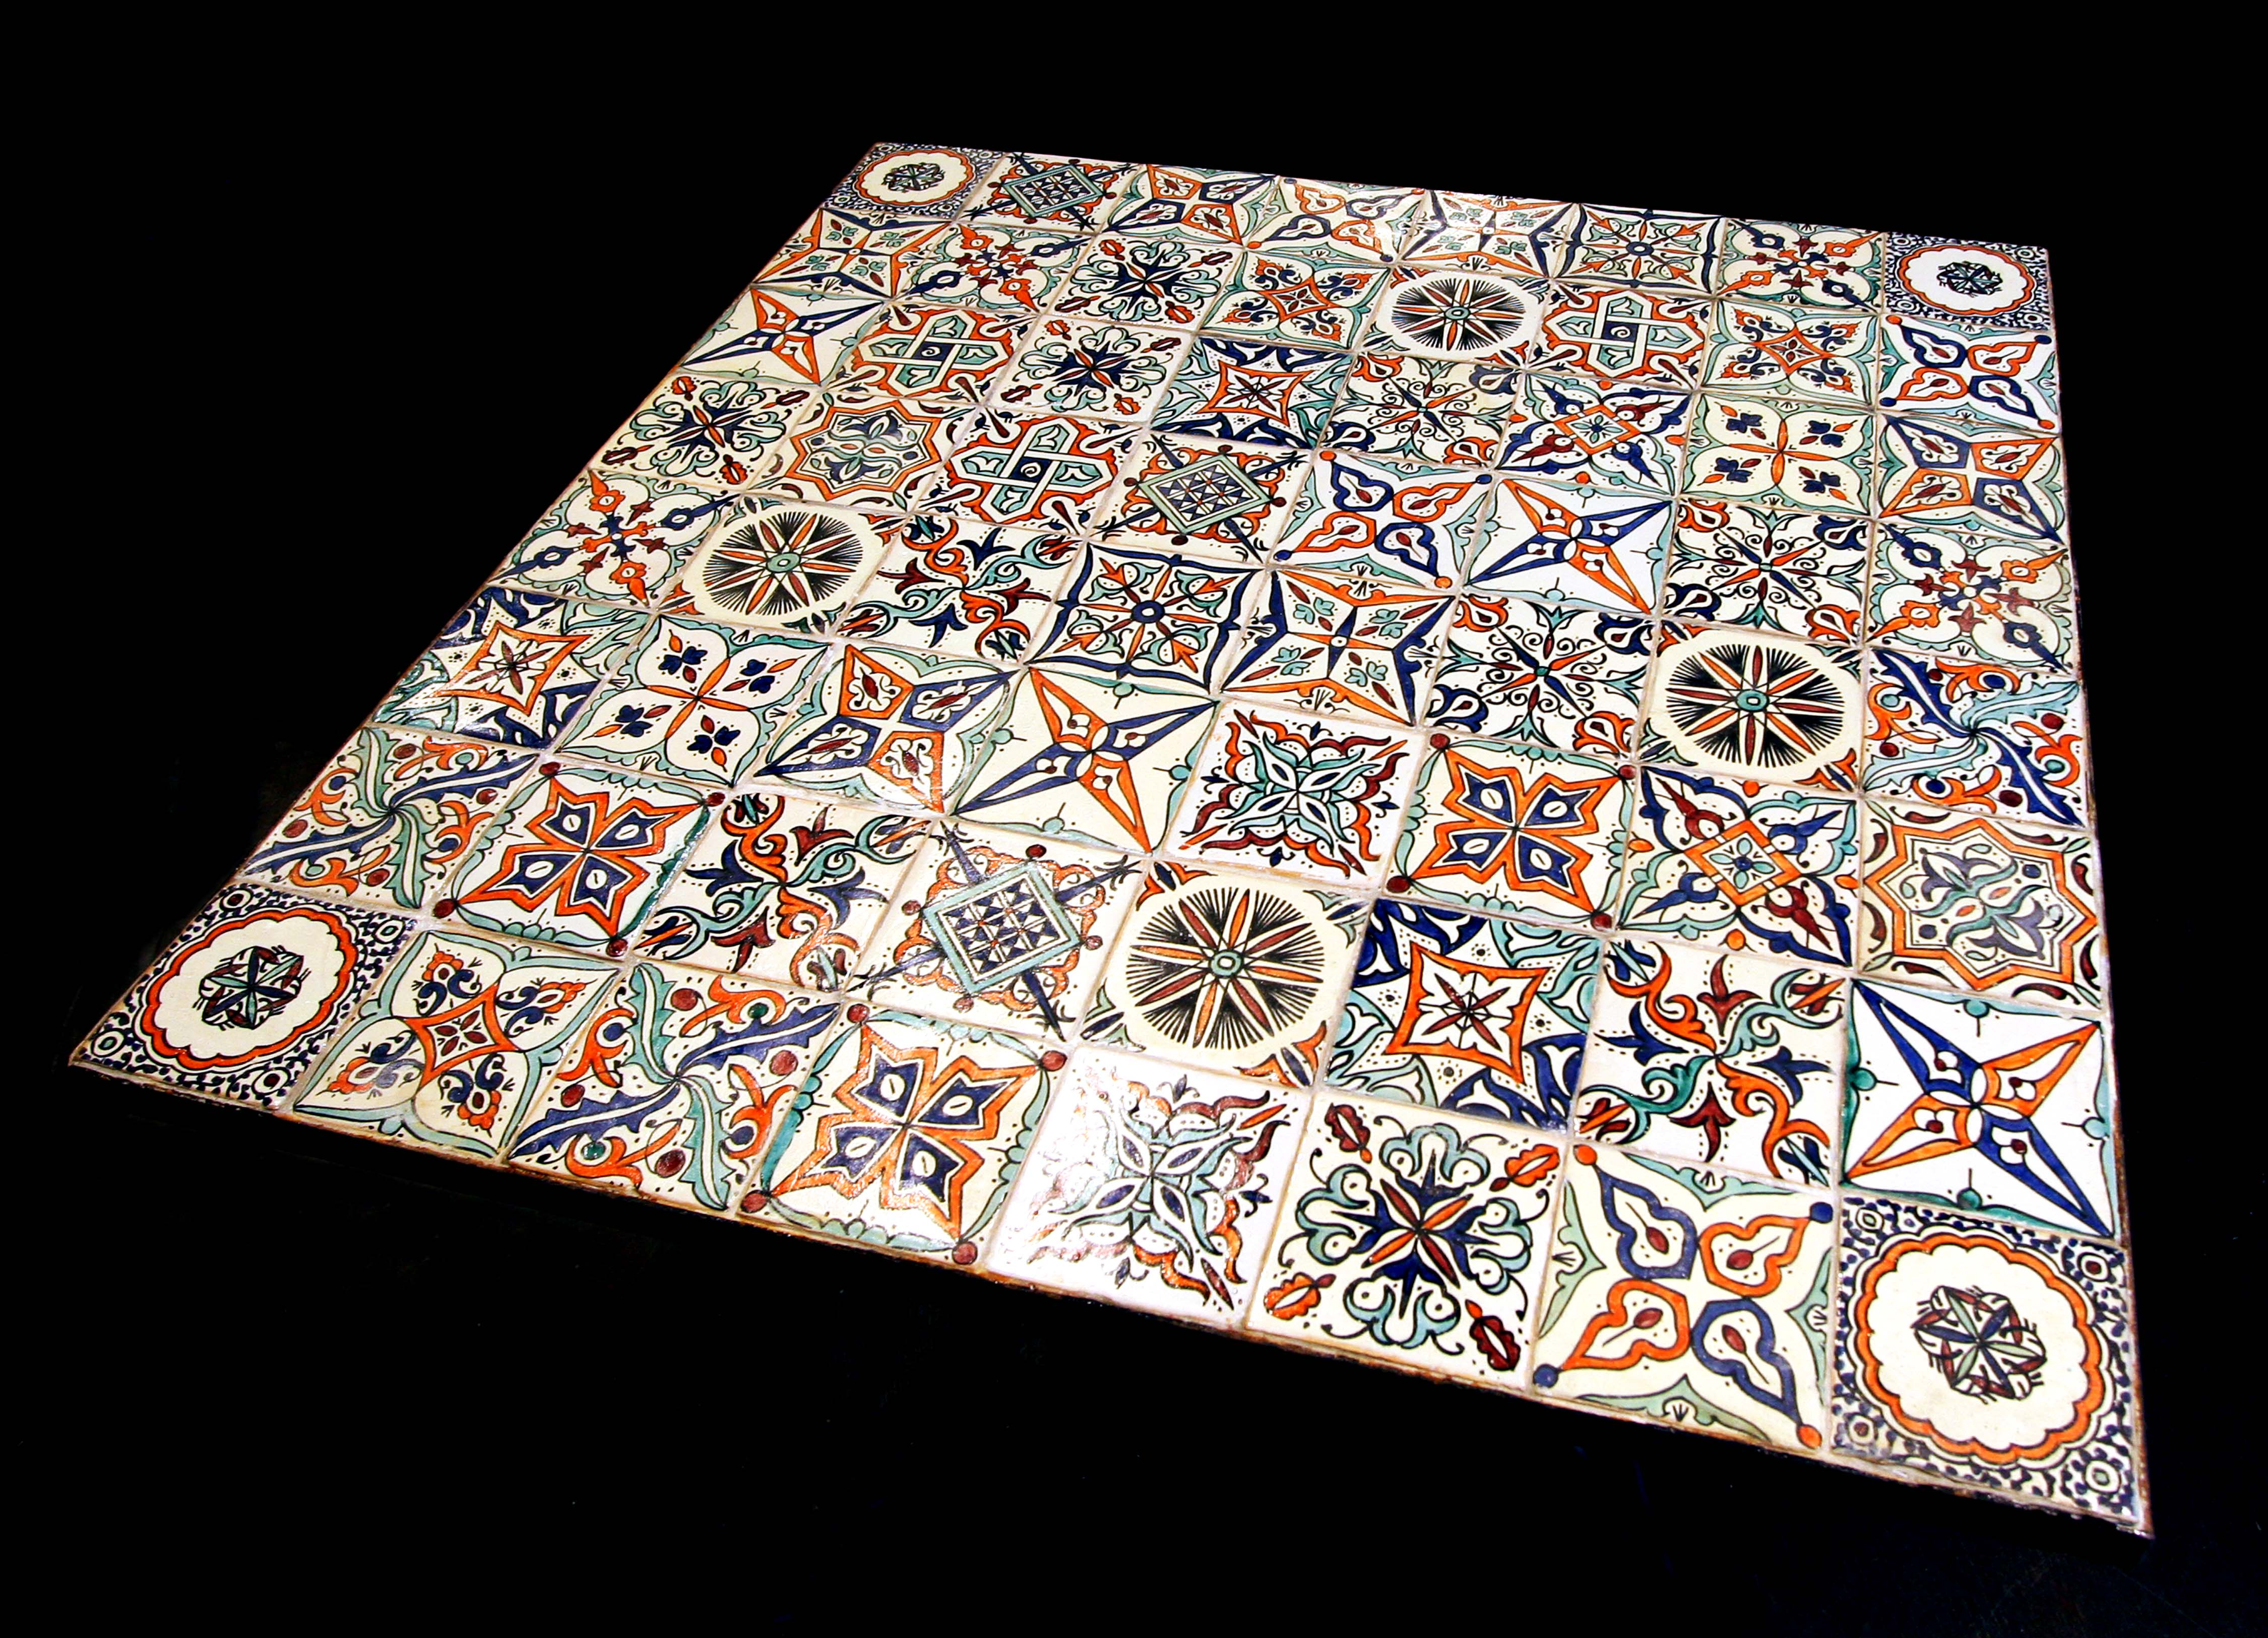 Table hand-painted tiles – ARTS DESIGN ®